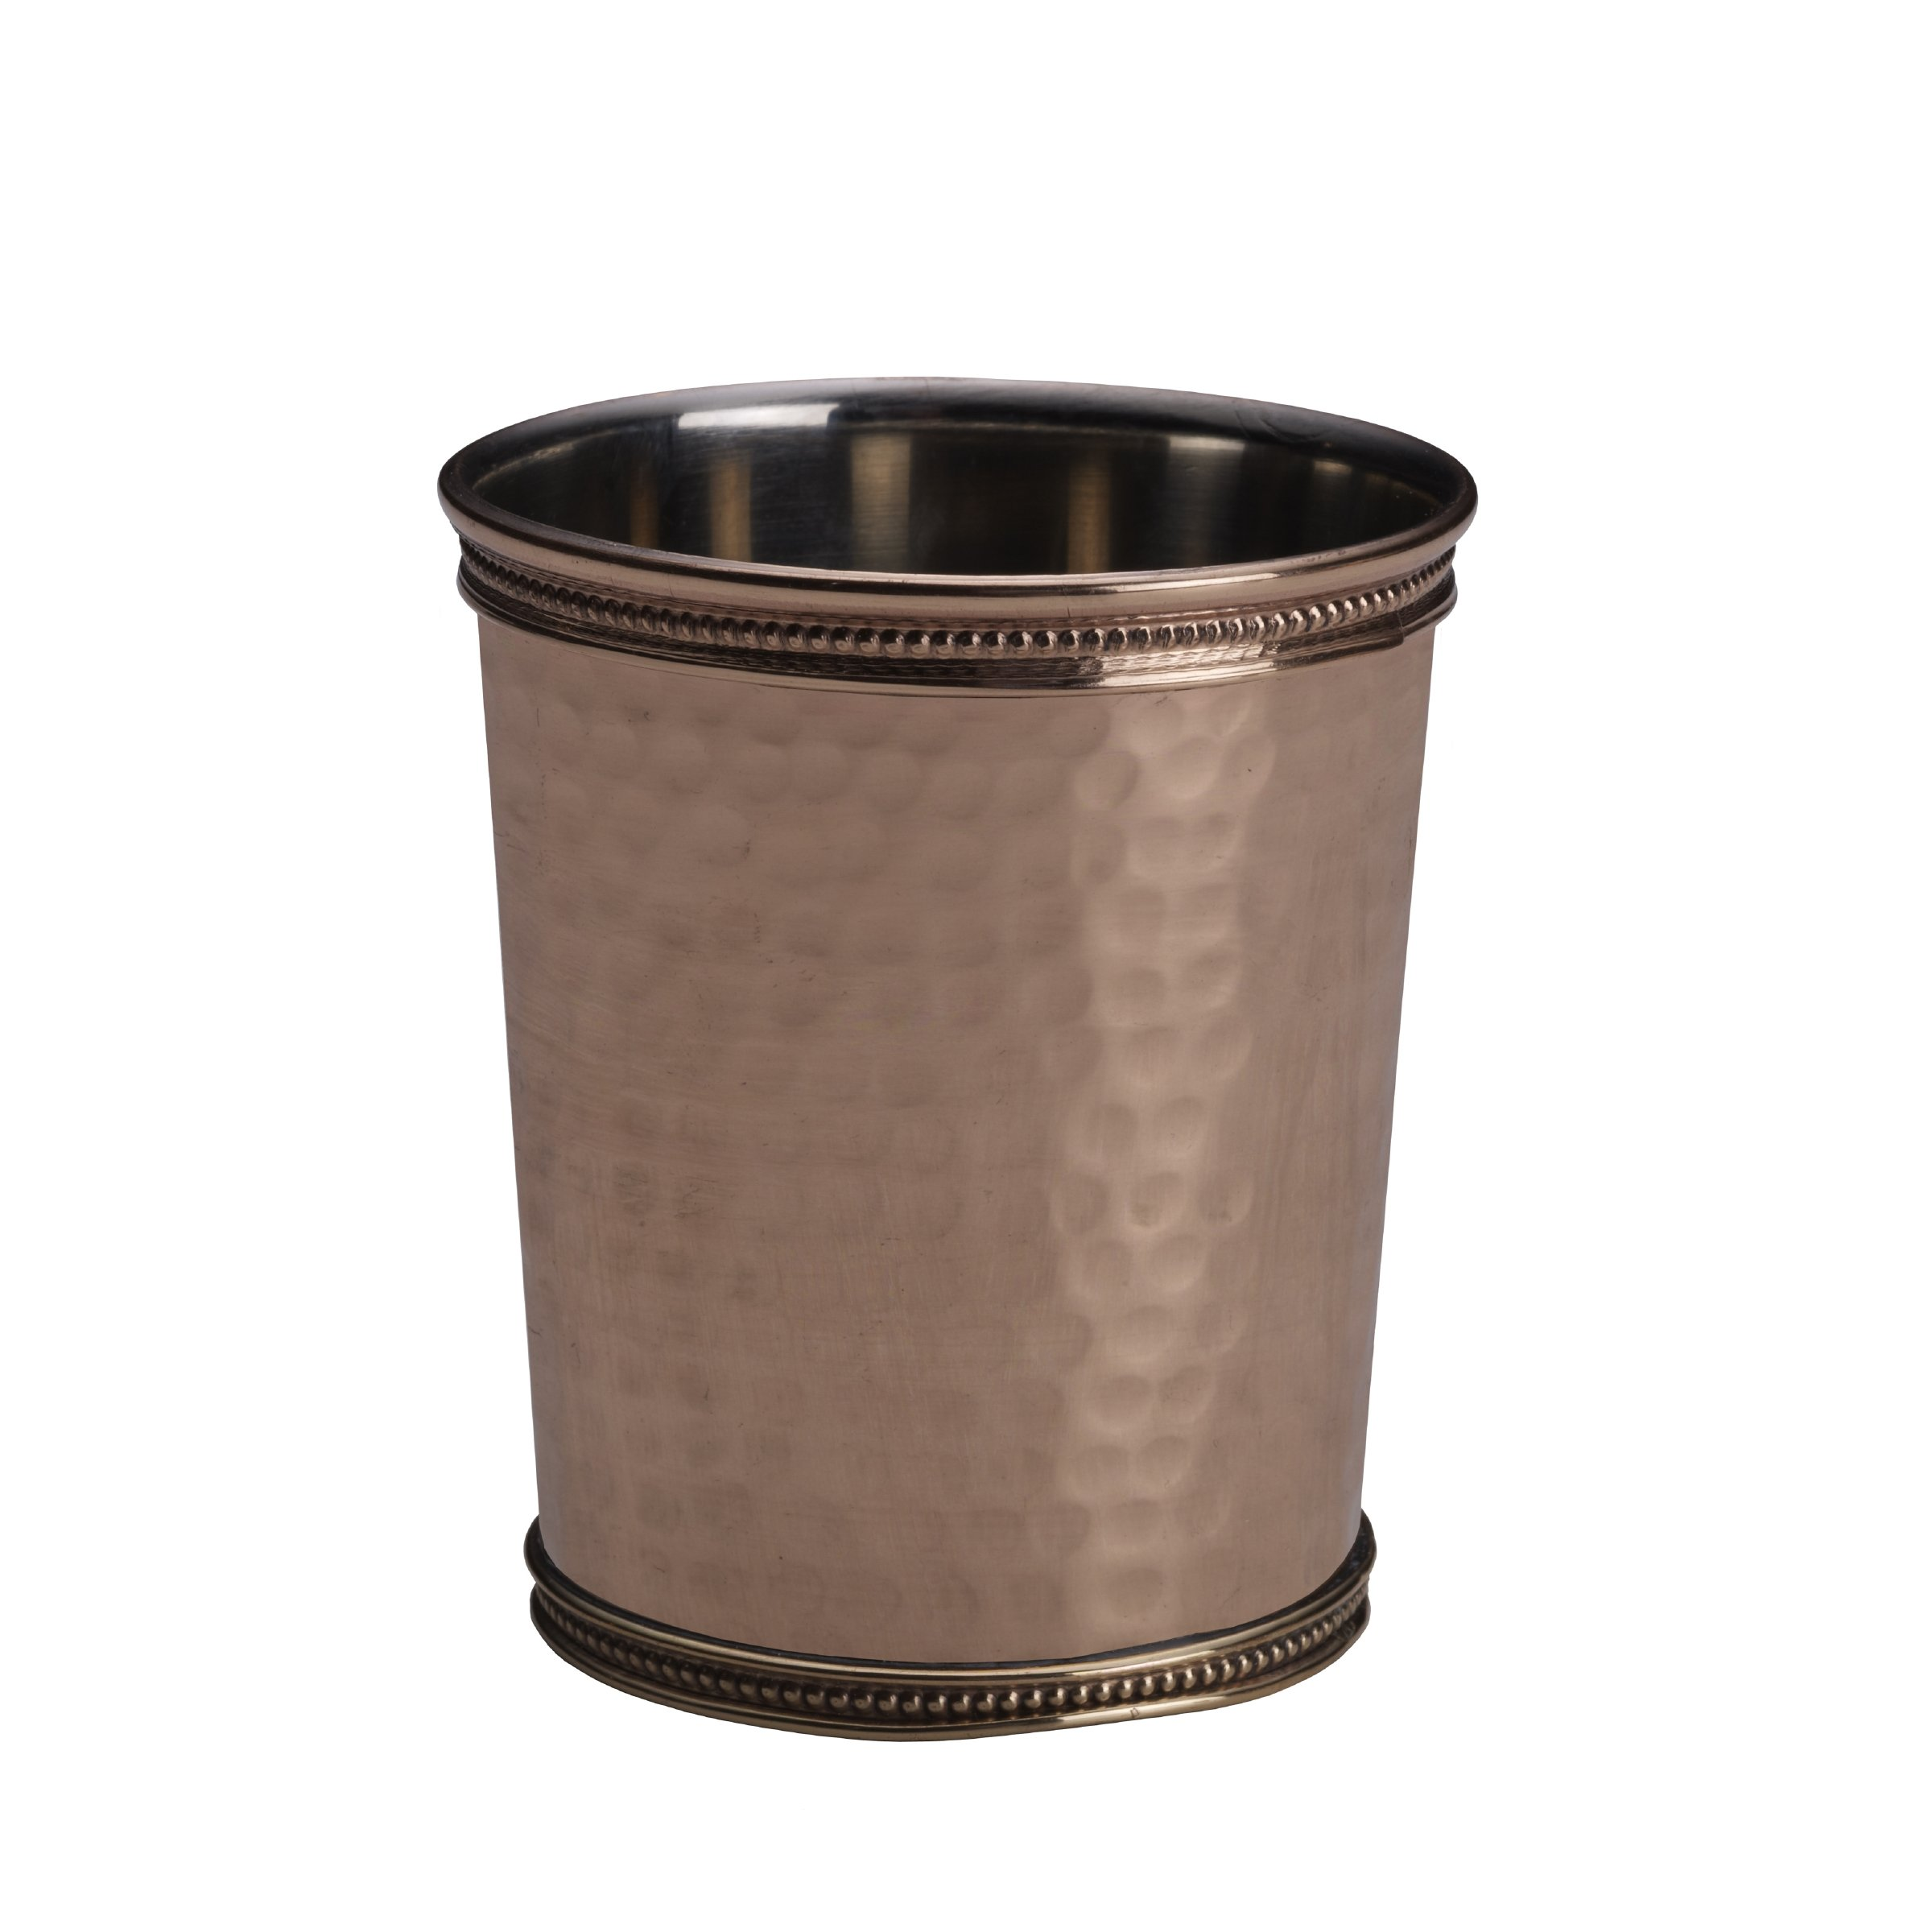 Mikasa Solid Copper Hammered Mint Julep Cup